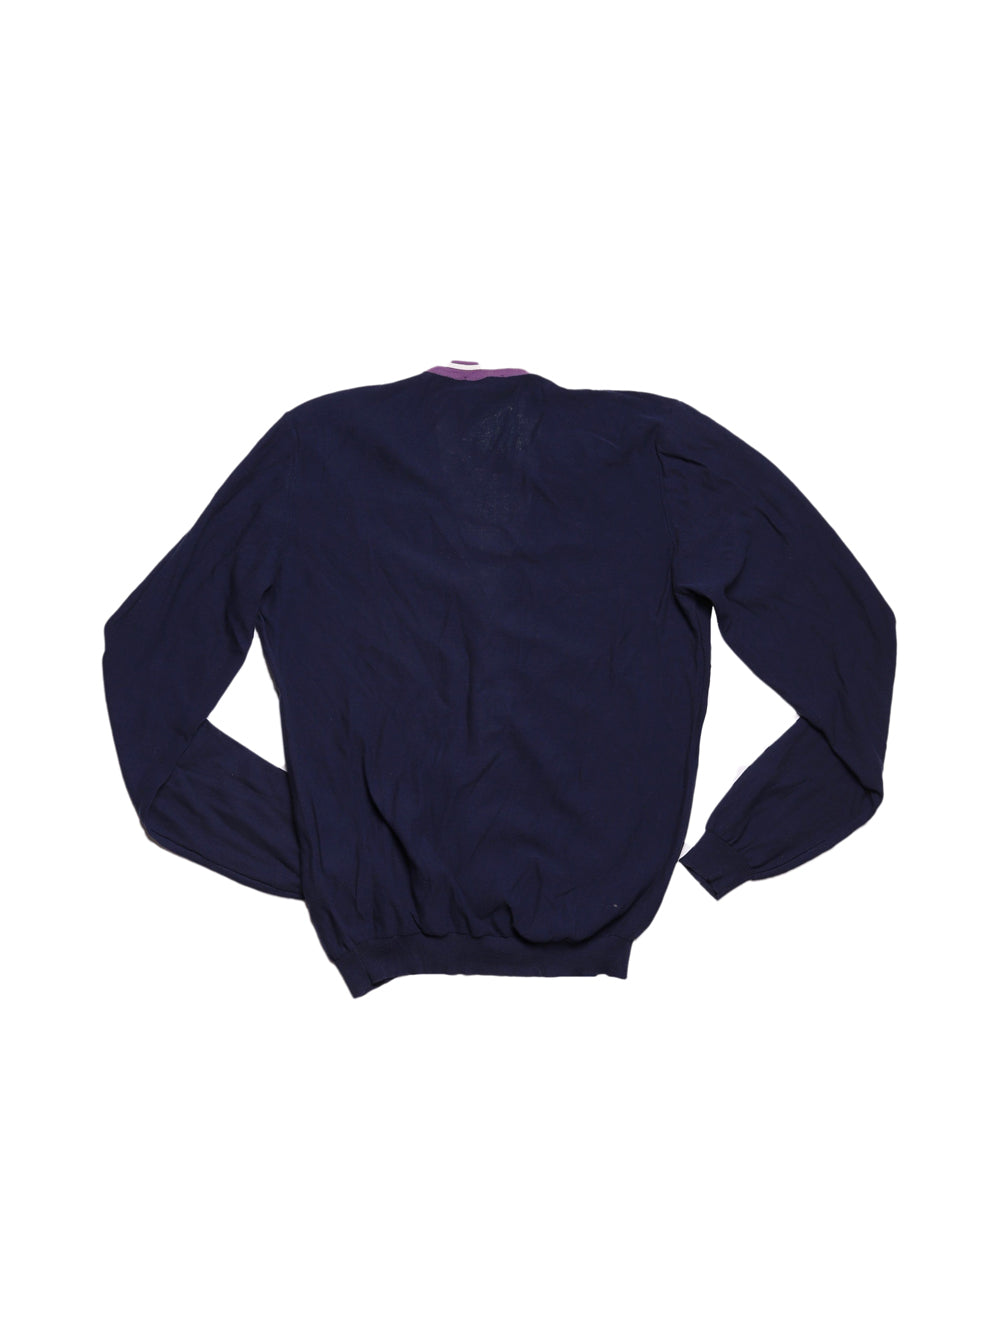 Back photo of Preloved Kaos Blue Woman's cardigan - size 12/L